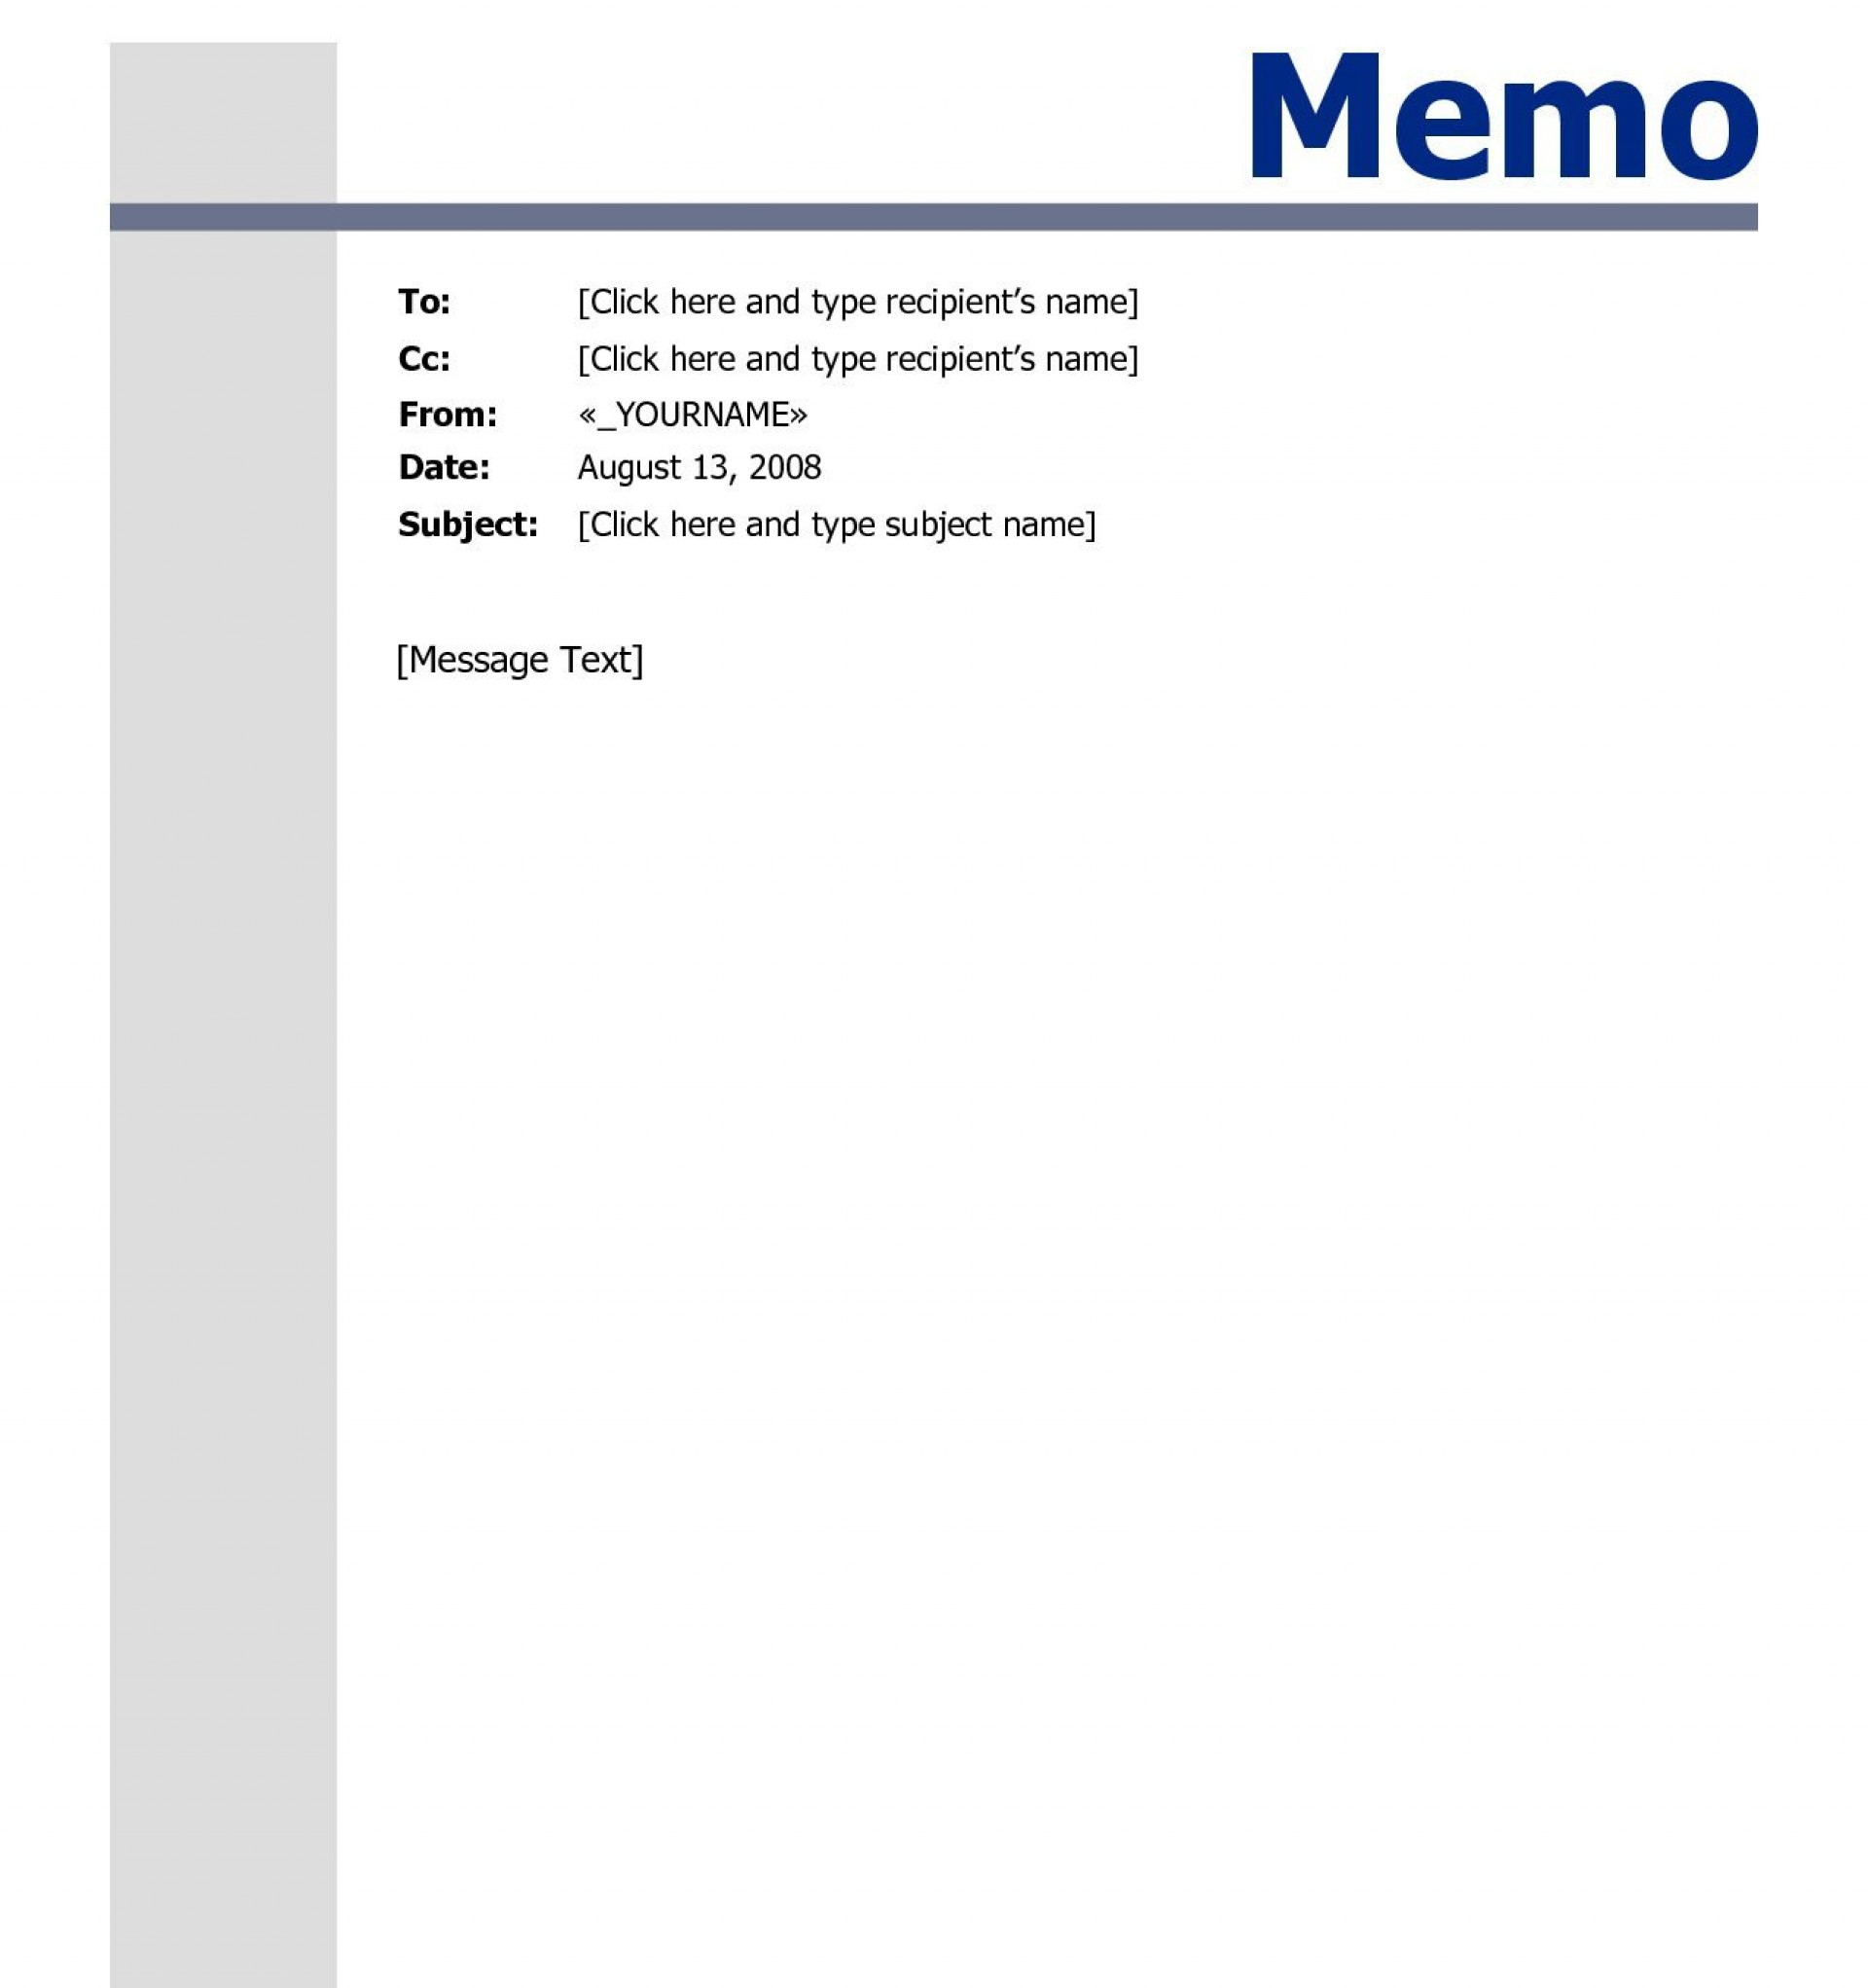 009 Top Memo Template For Word Highest Quality  Free Cash Sample 20131920